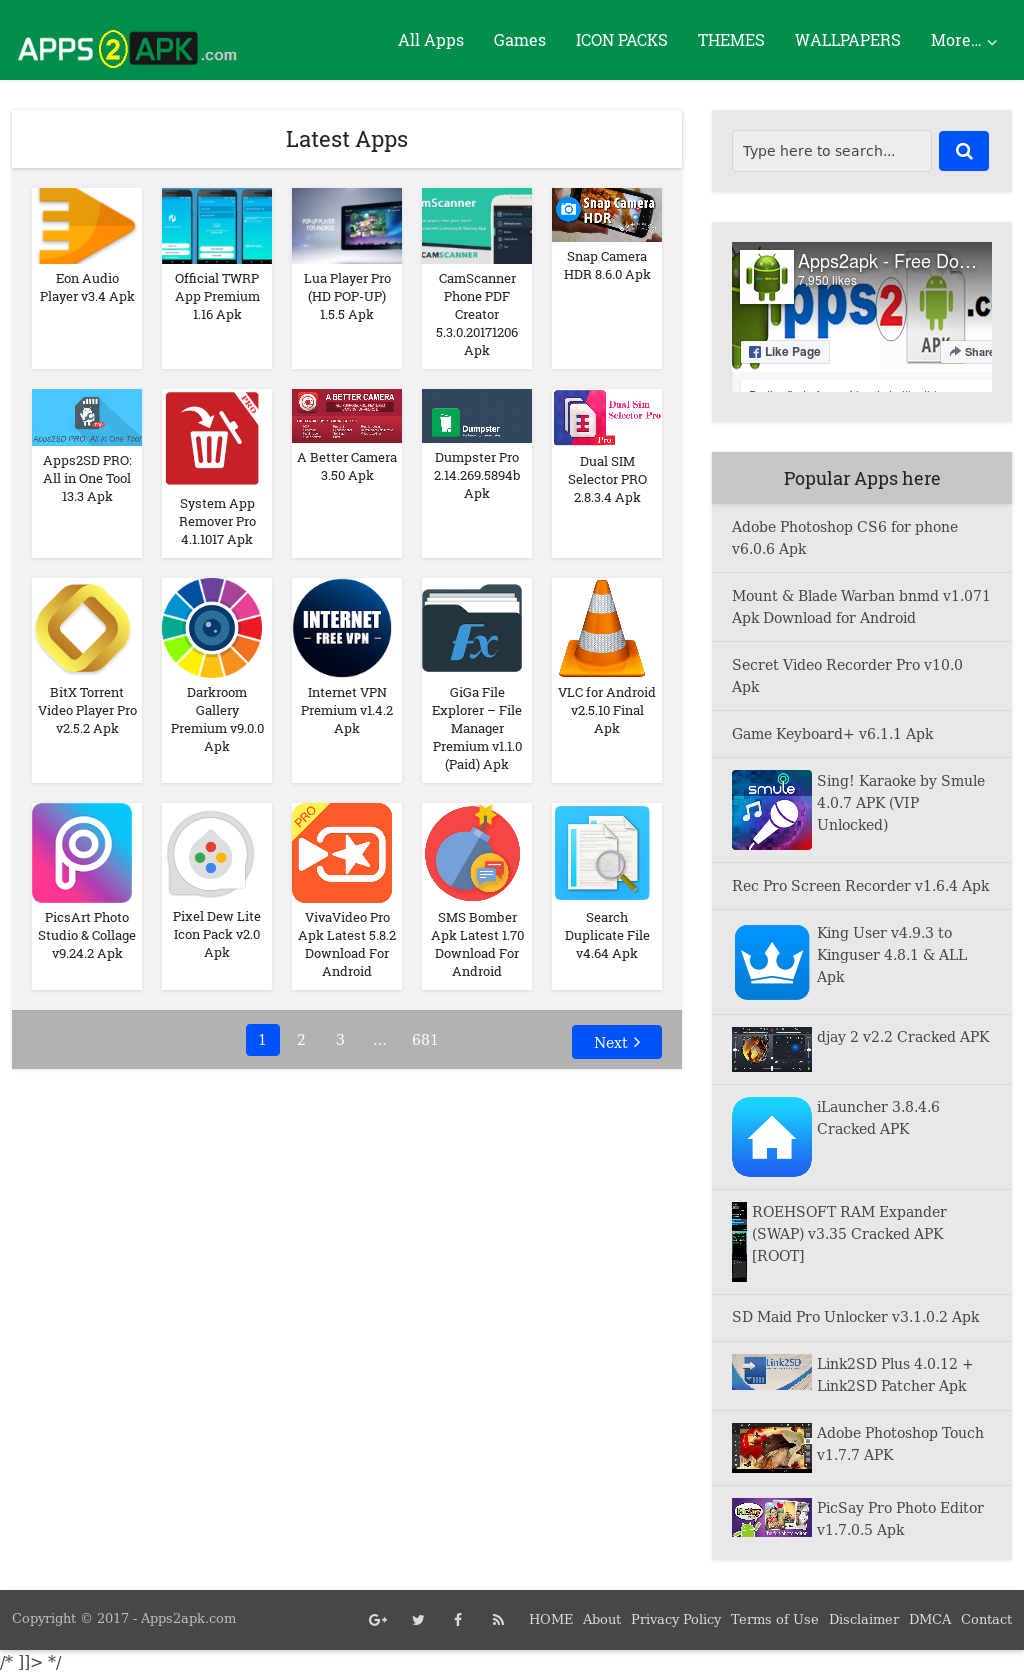 Apps2apk - Free Download Android Apps Competitors, Revenue and